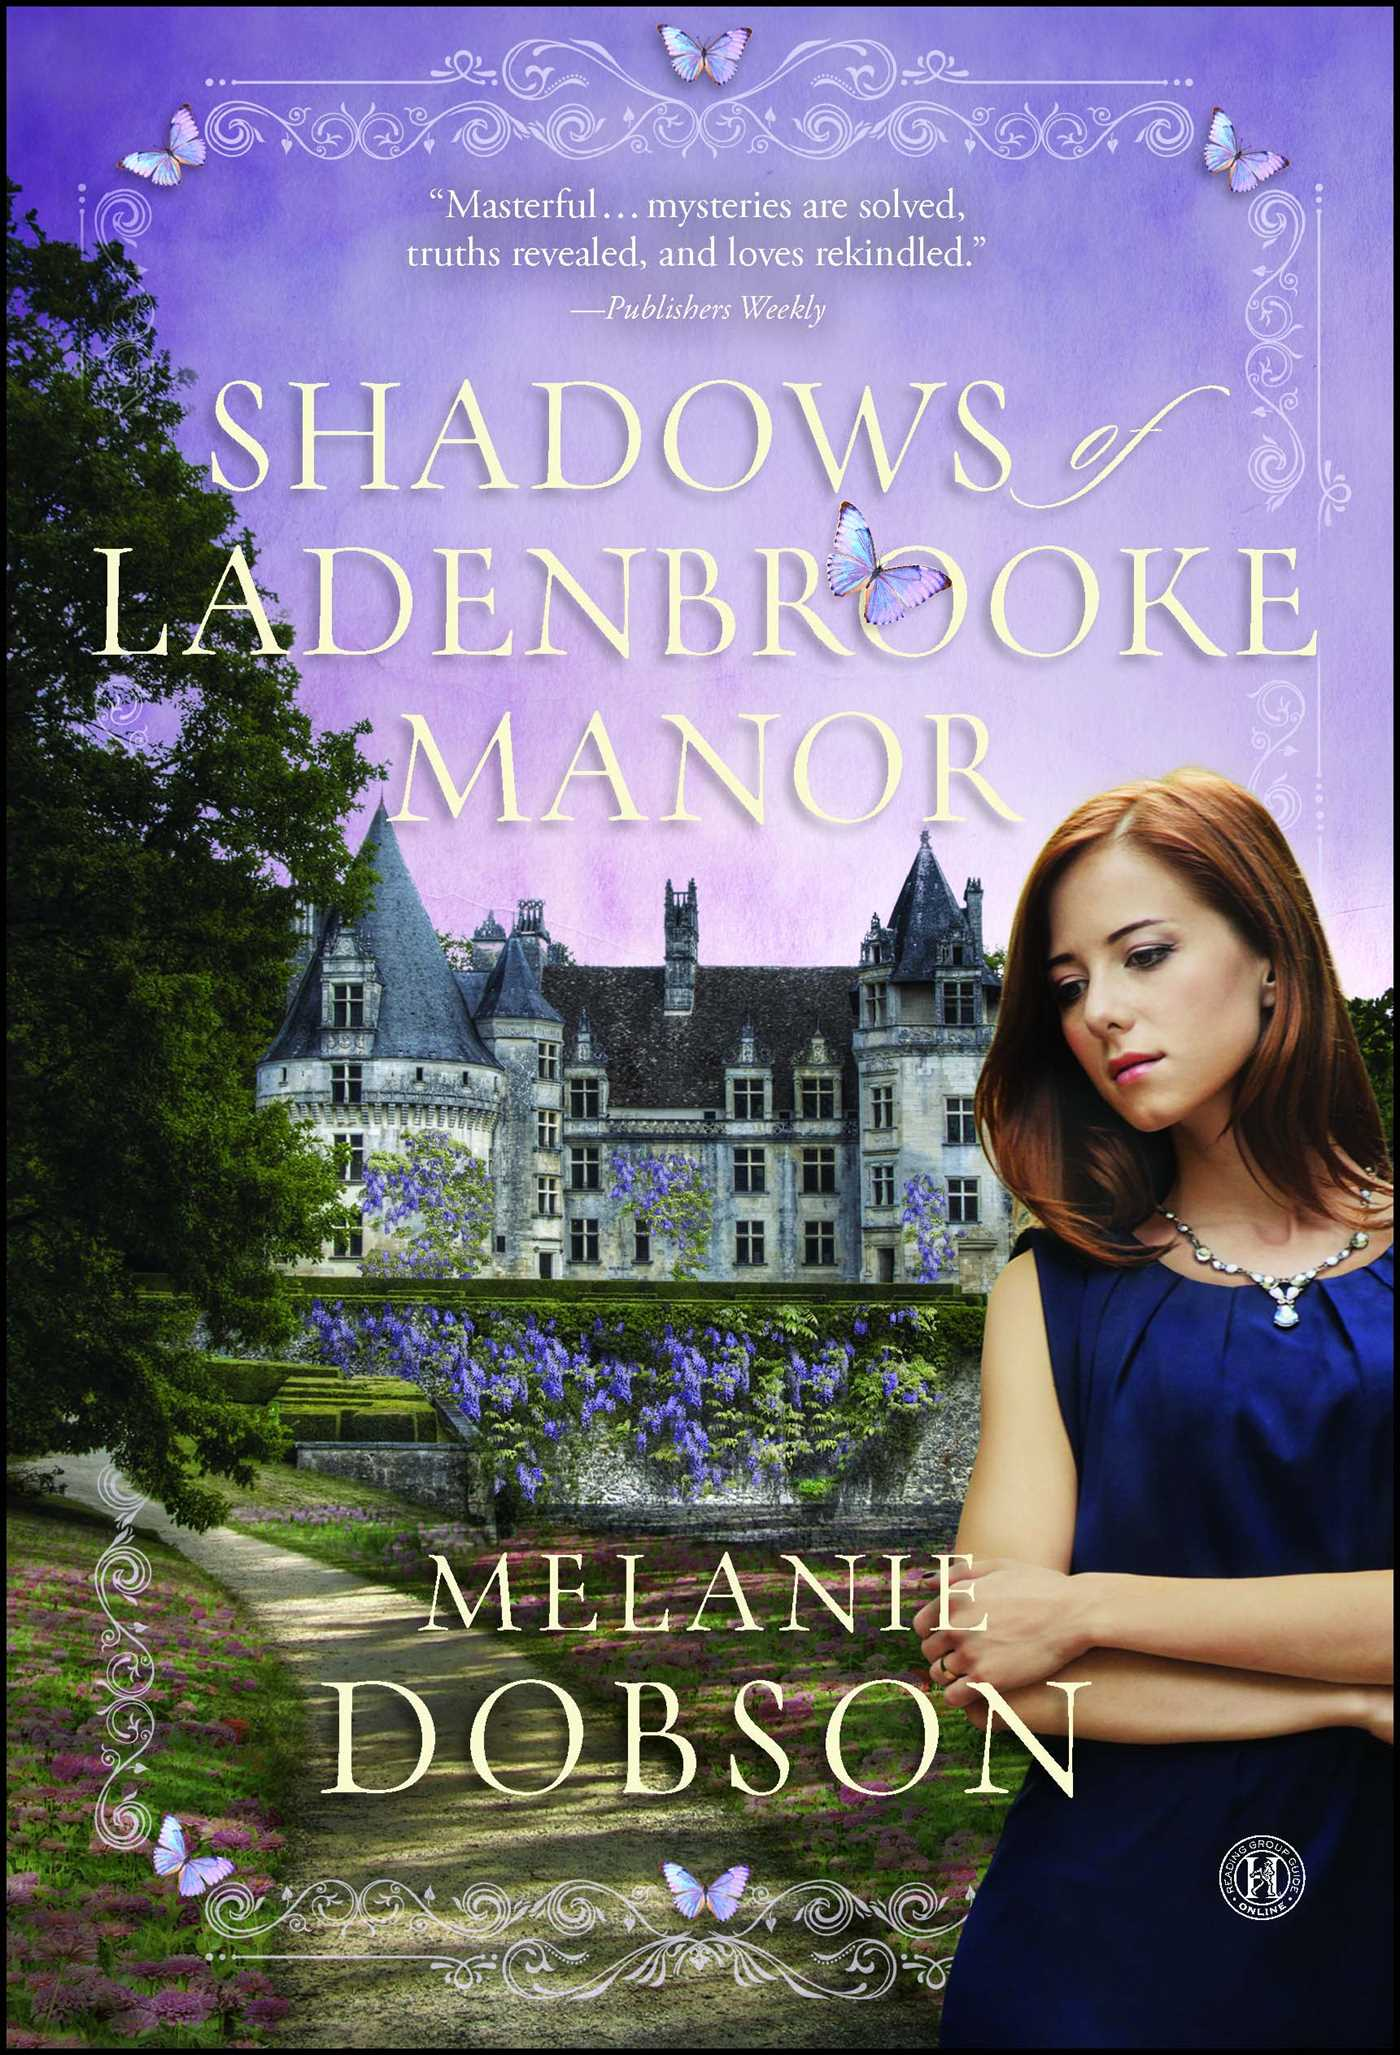 Shadows of ladenbrooke manor 9781476746142 hr